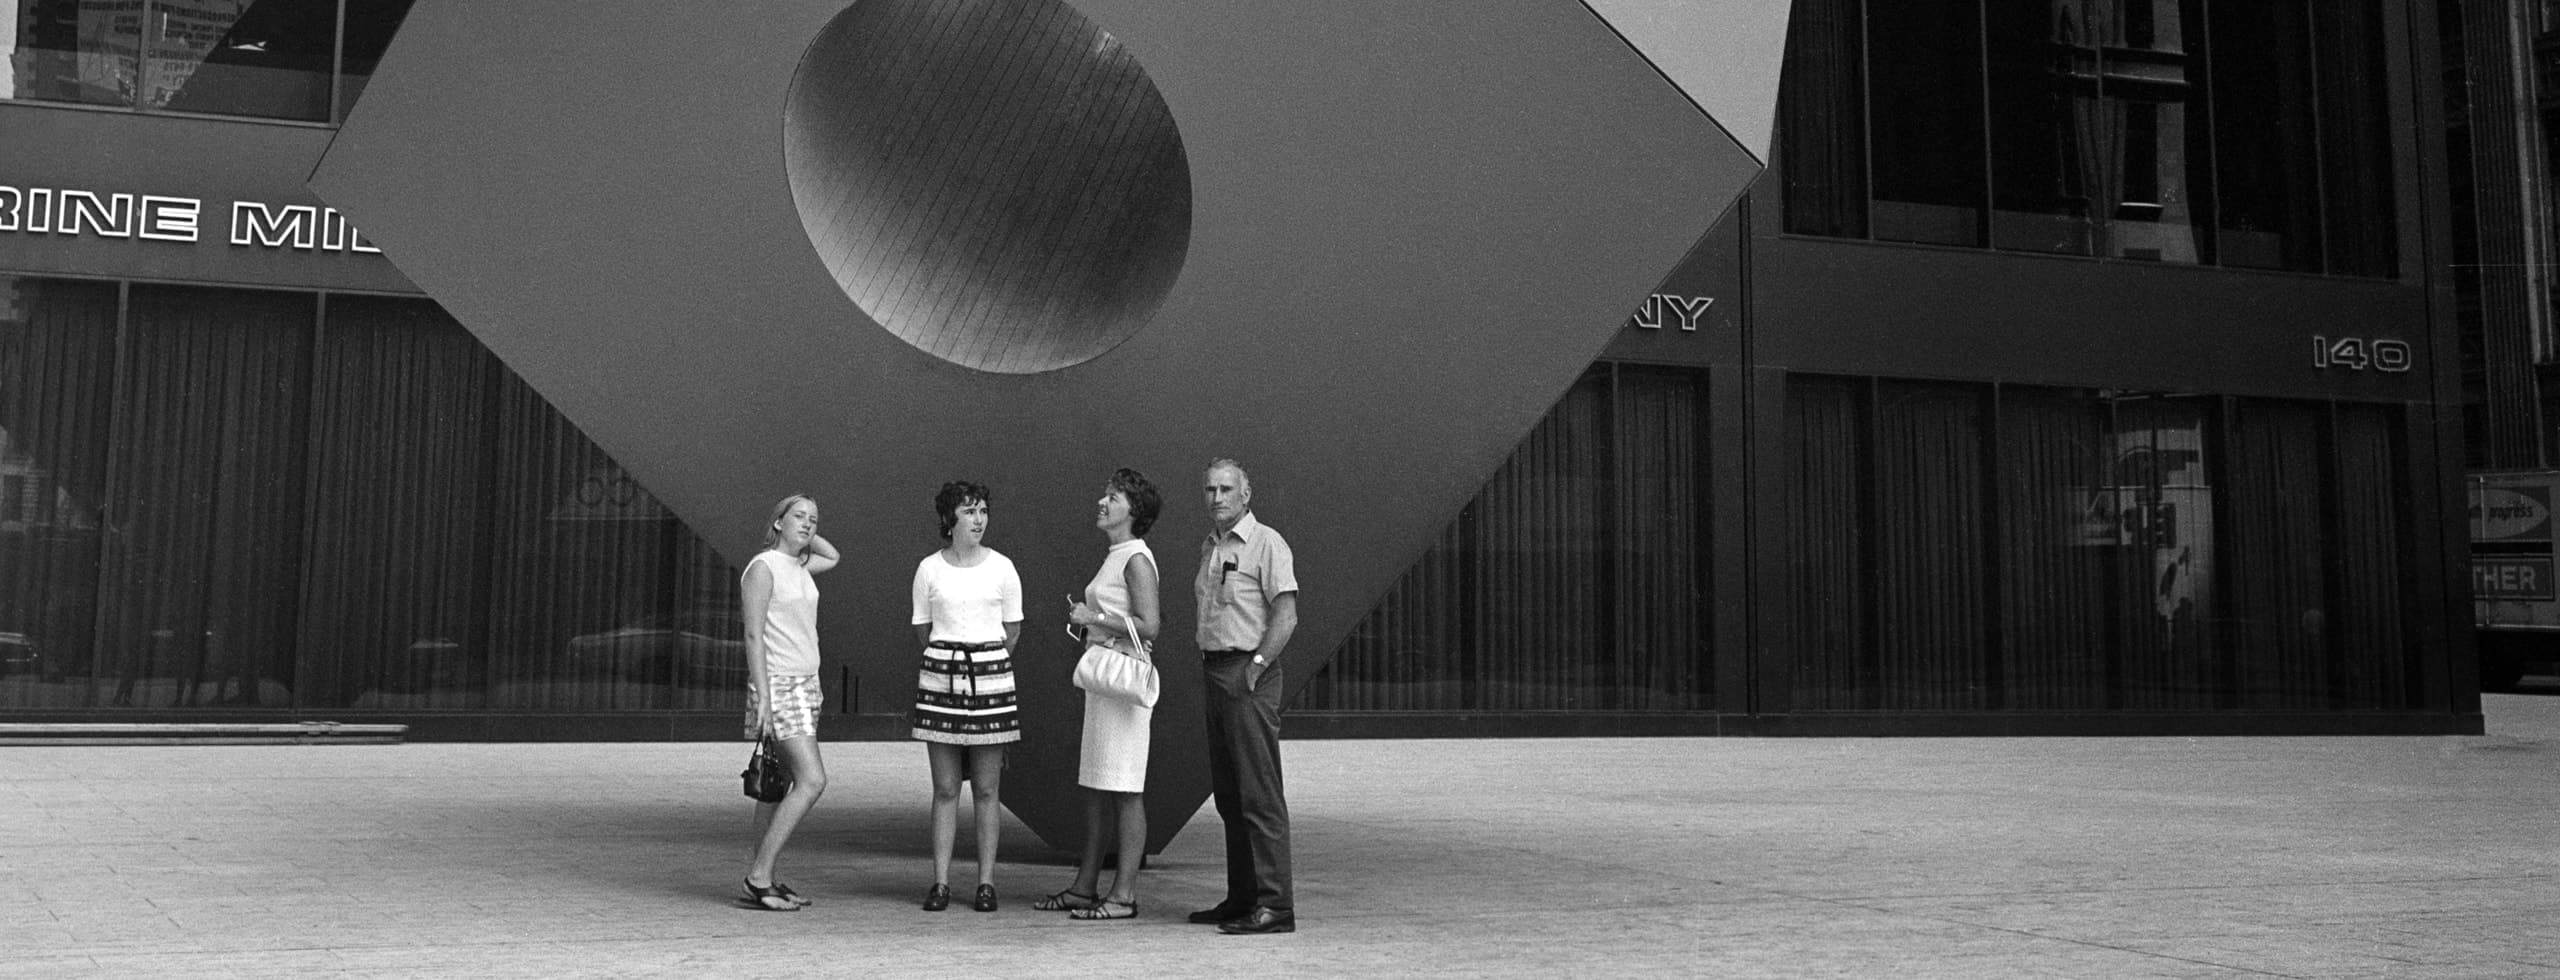 Four people stand on the sidewalk in front of a large statue of a cube with a hole going through the center of it